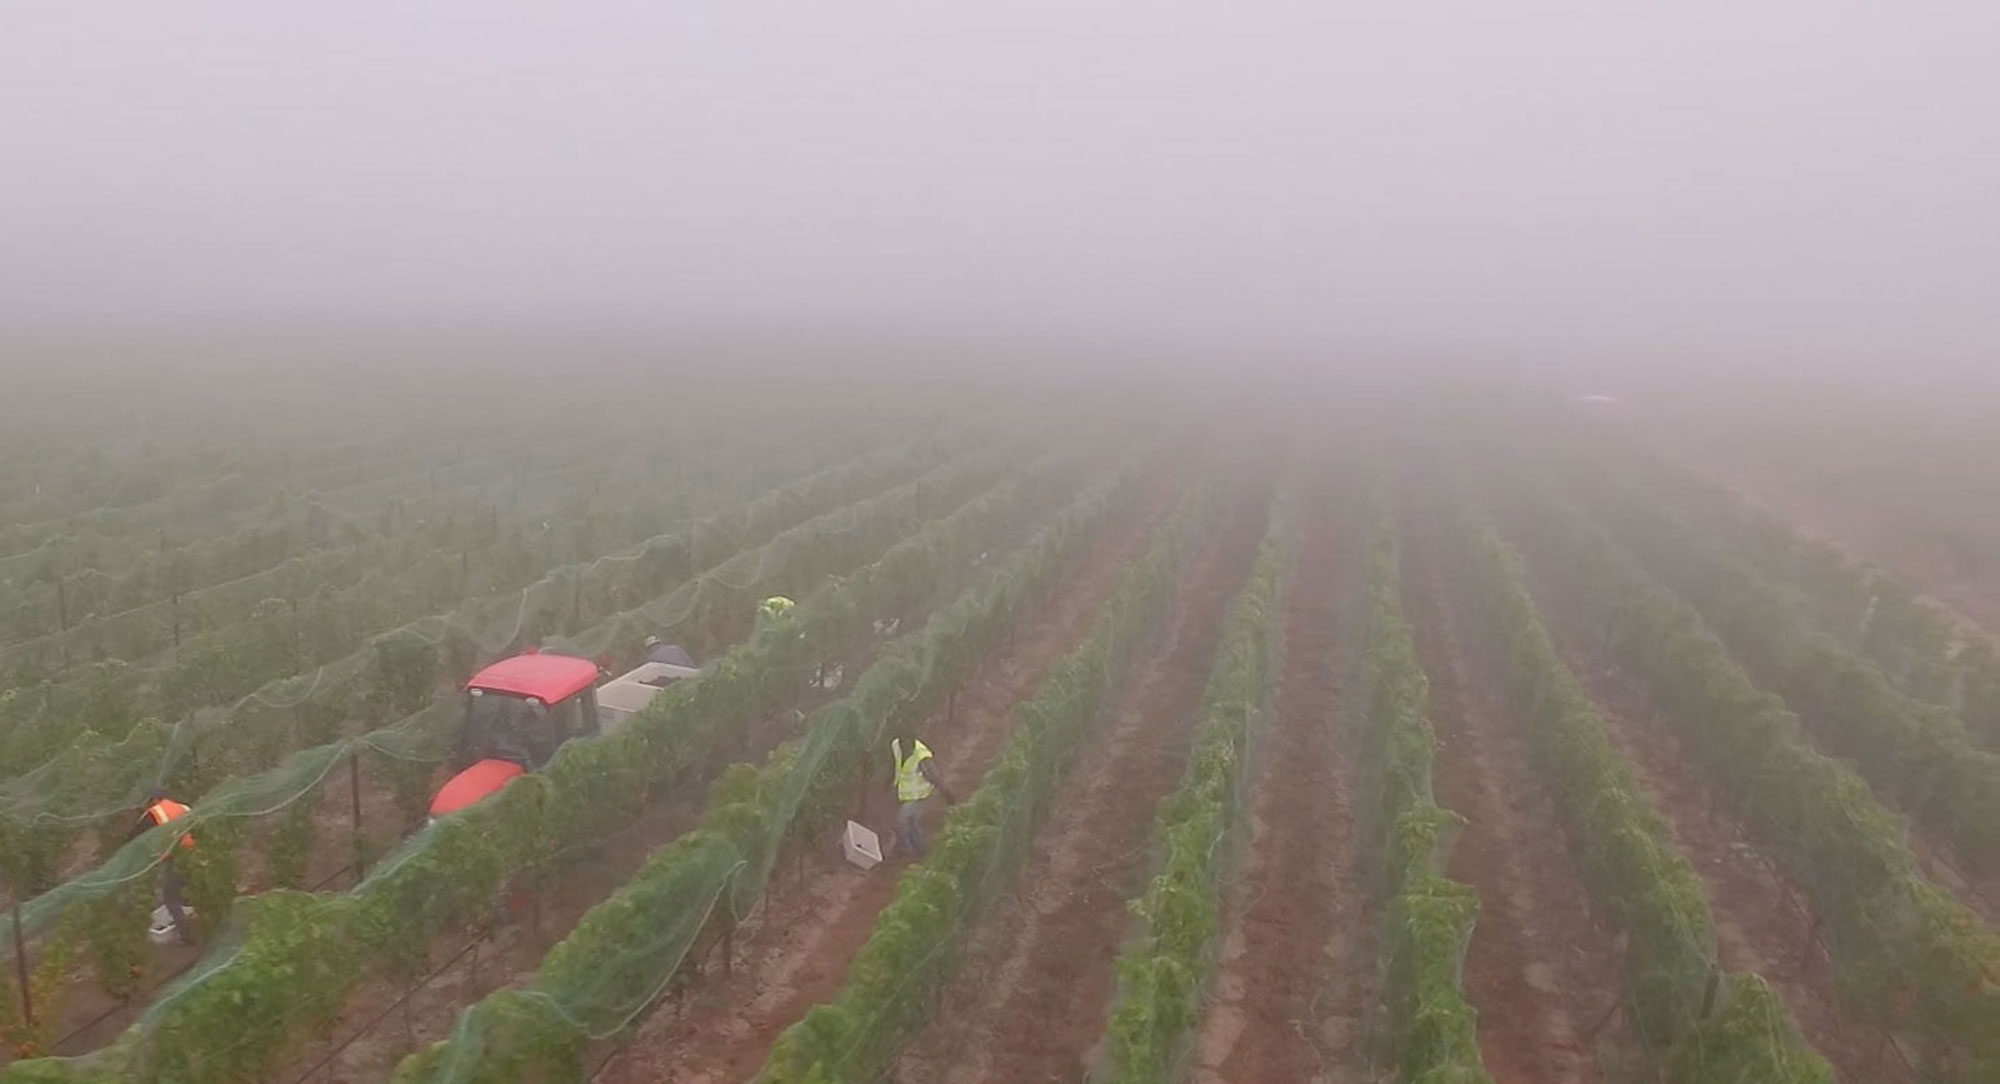 Harvest Low Drone Fog